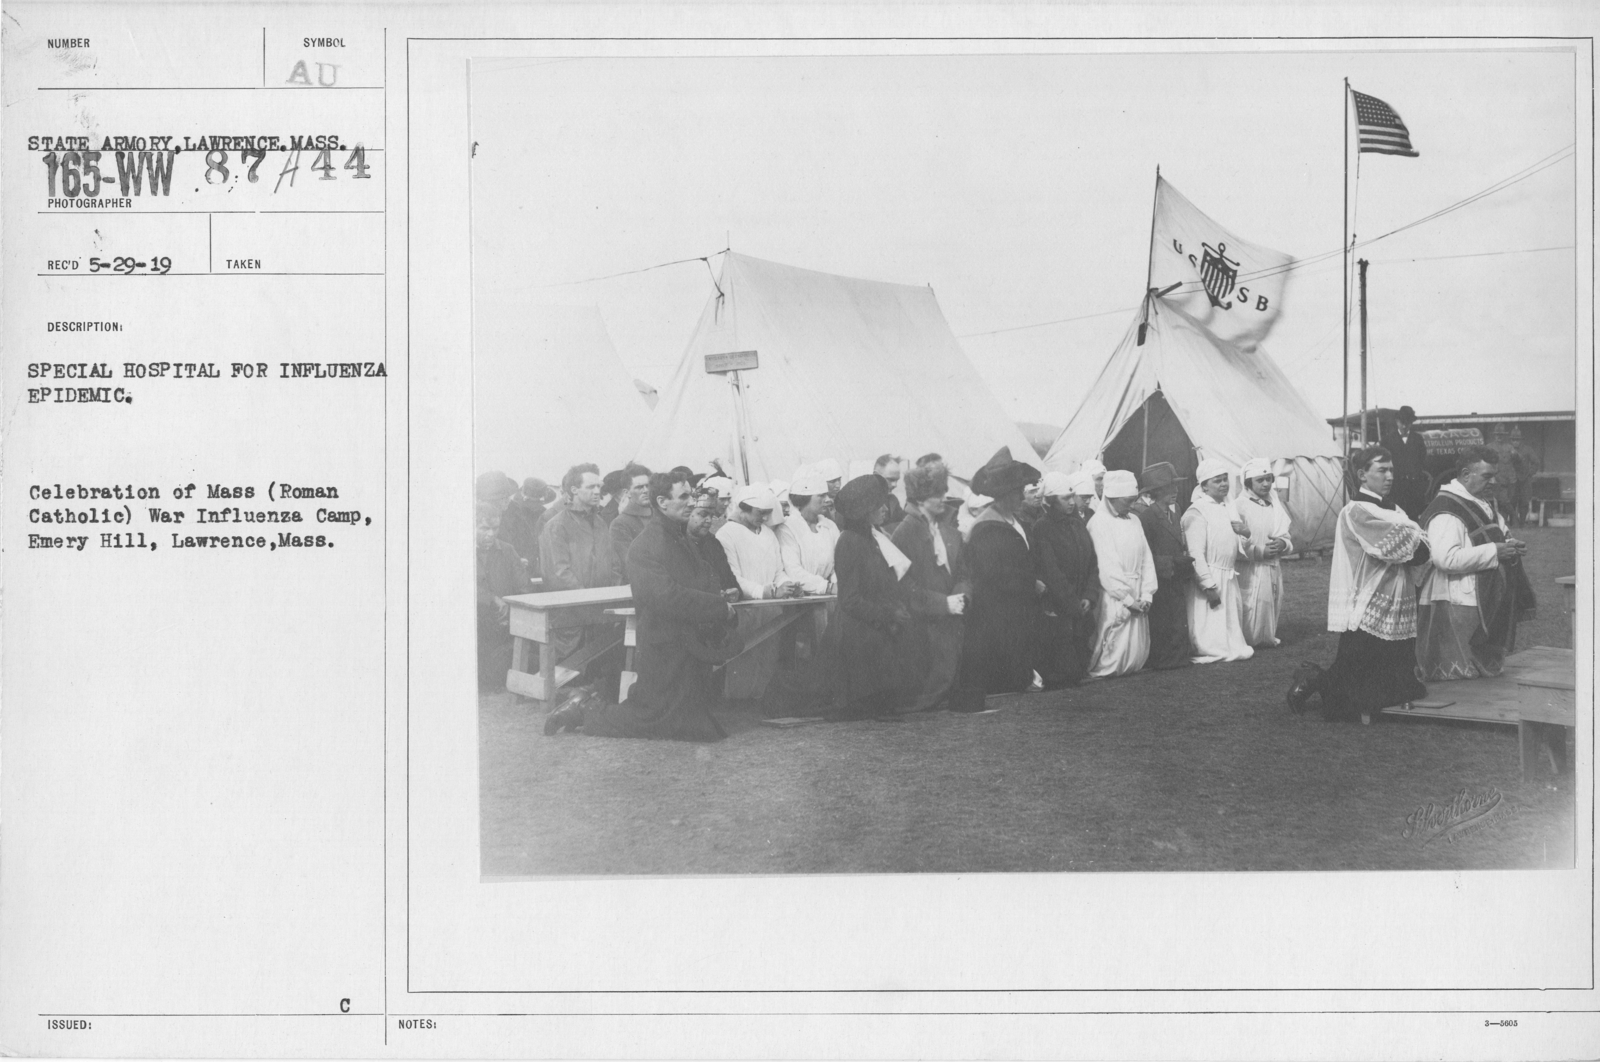 Ceremonies and Parades - Special hospital for Influenza Epidemic.  Celebration of Mass (Roman Catholic) War Influenza Camp, Emery Hill, Lawrence, Mass